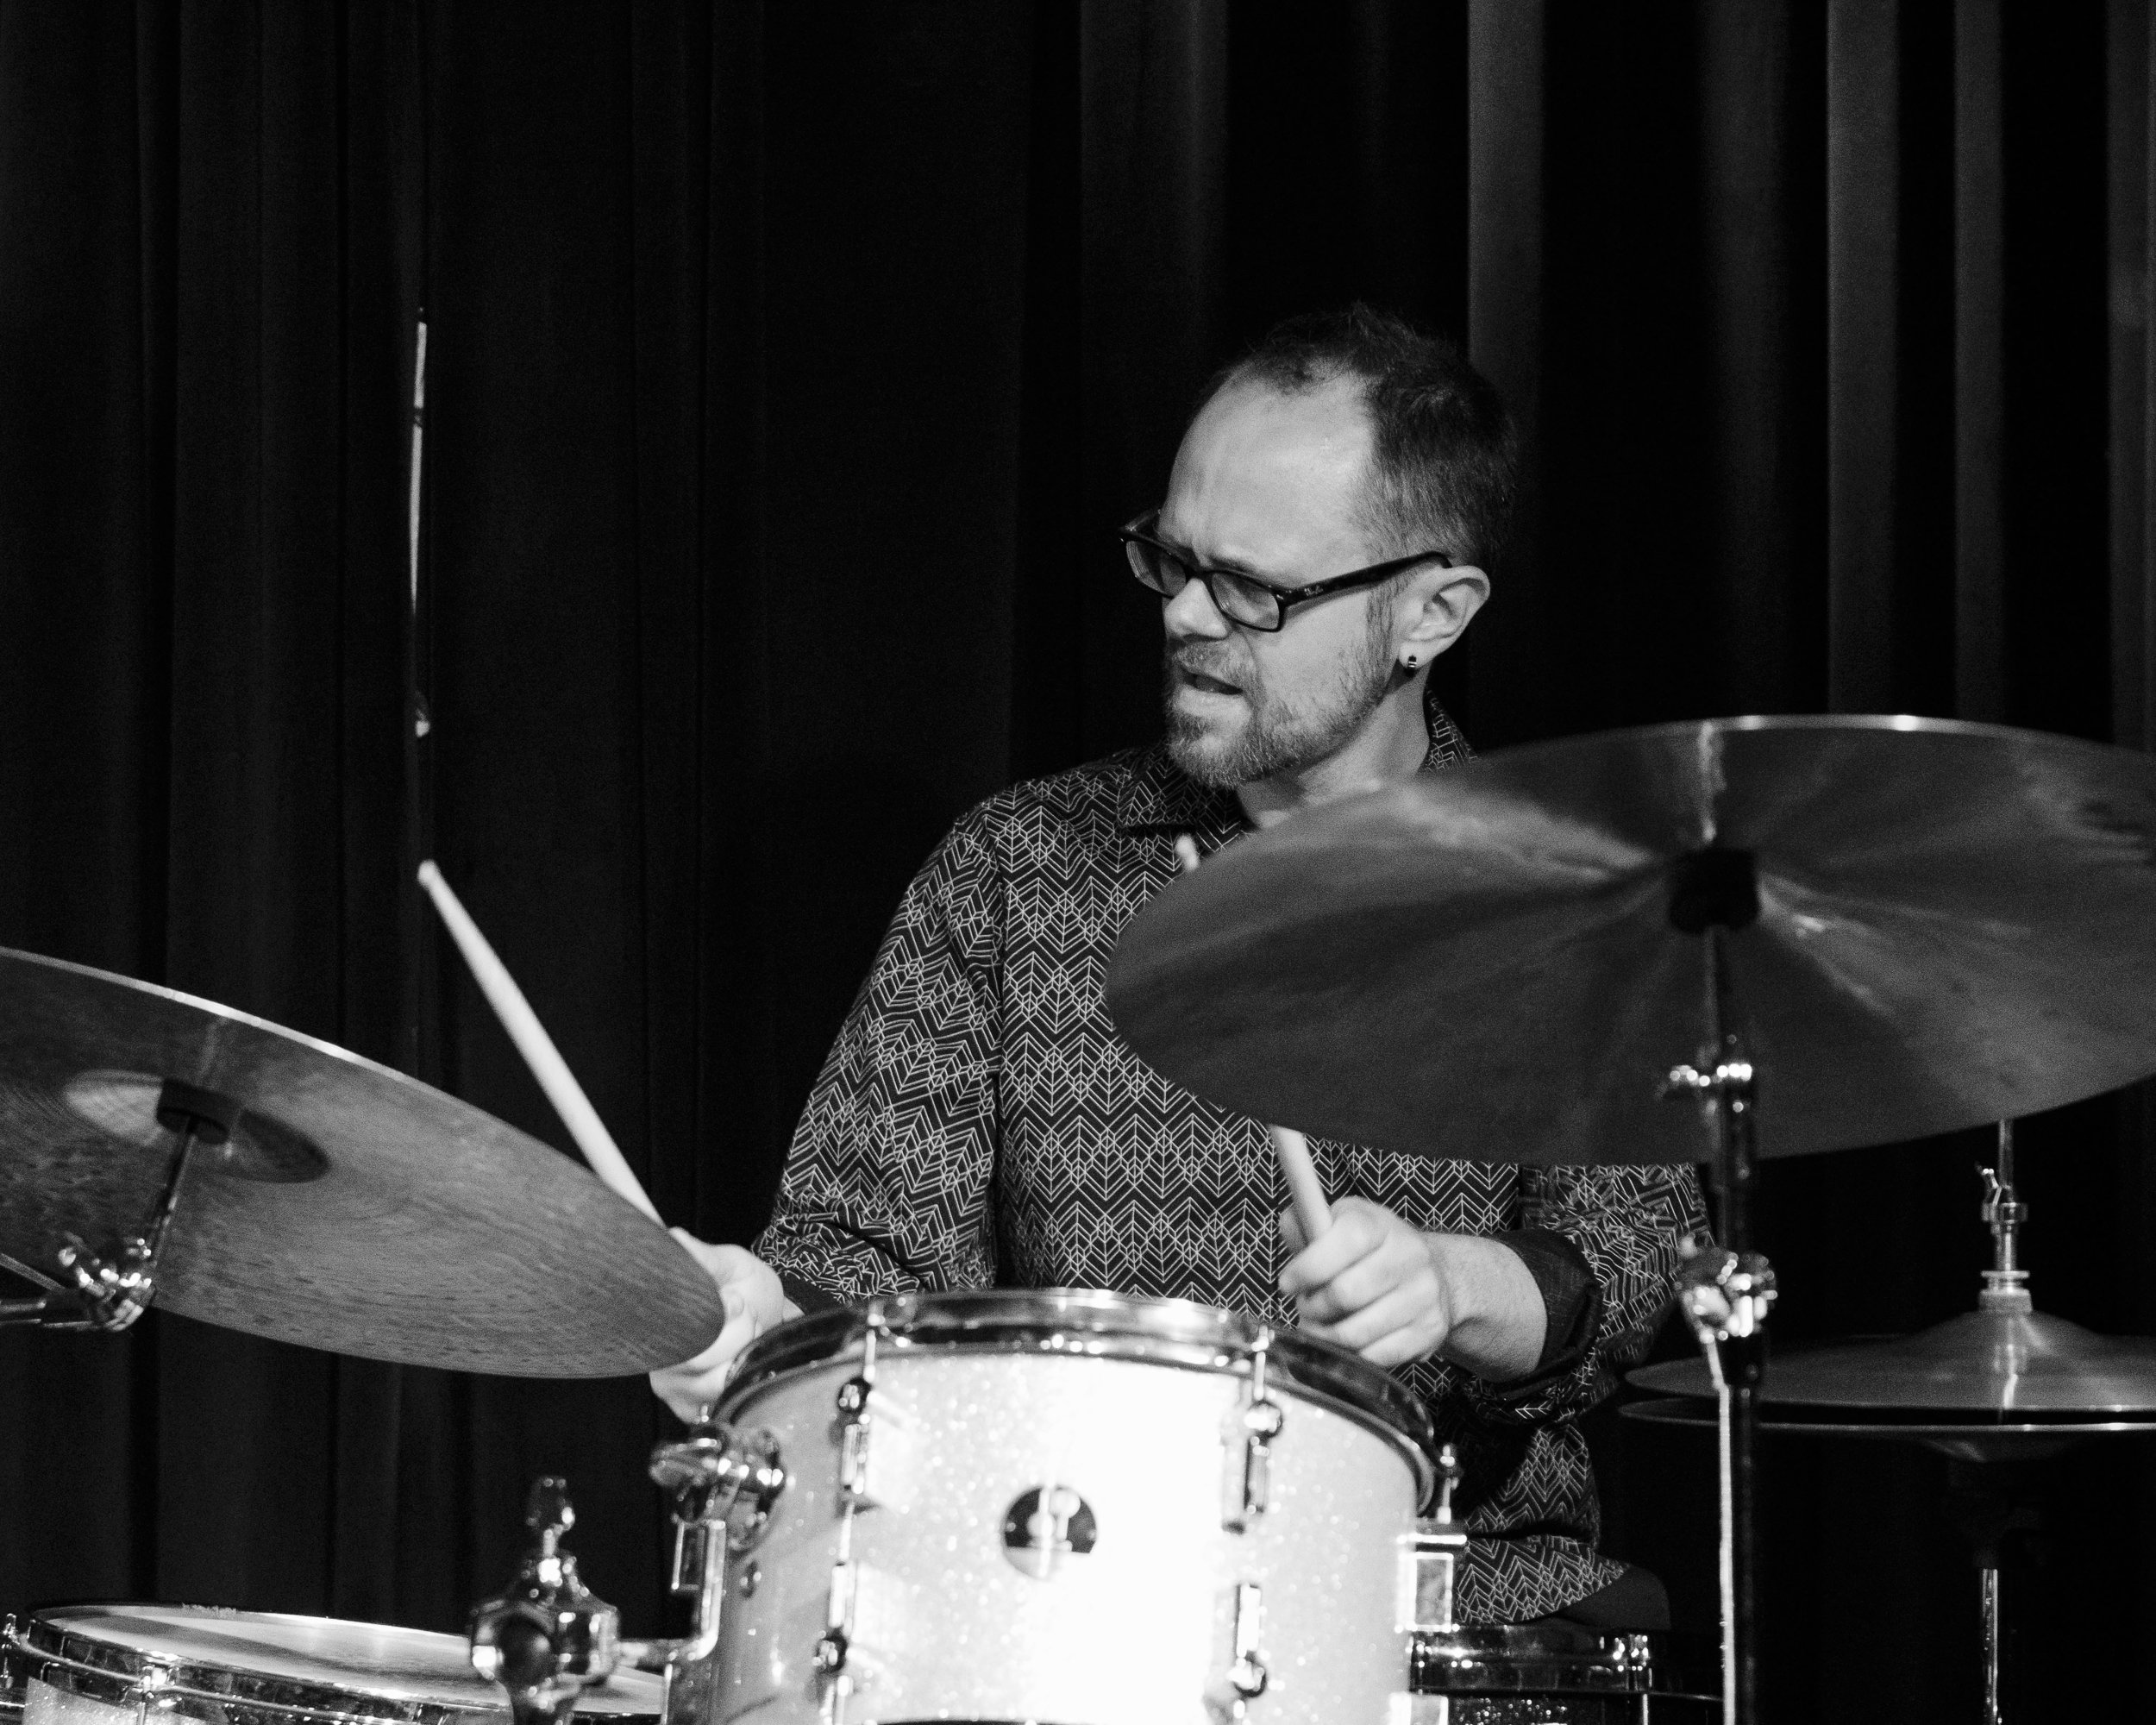 Ryan Anthony with Matt Lennex and The Giants of Jazz at The Nash